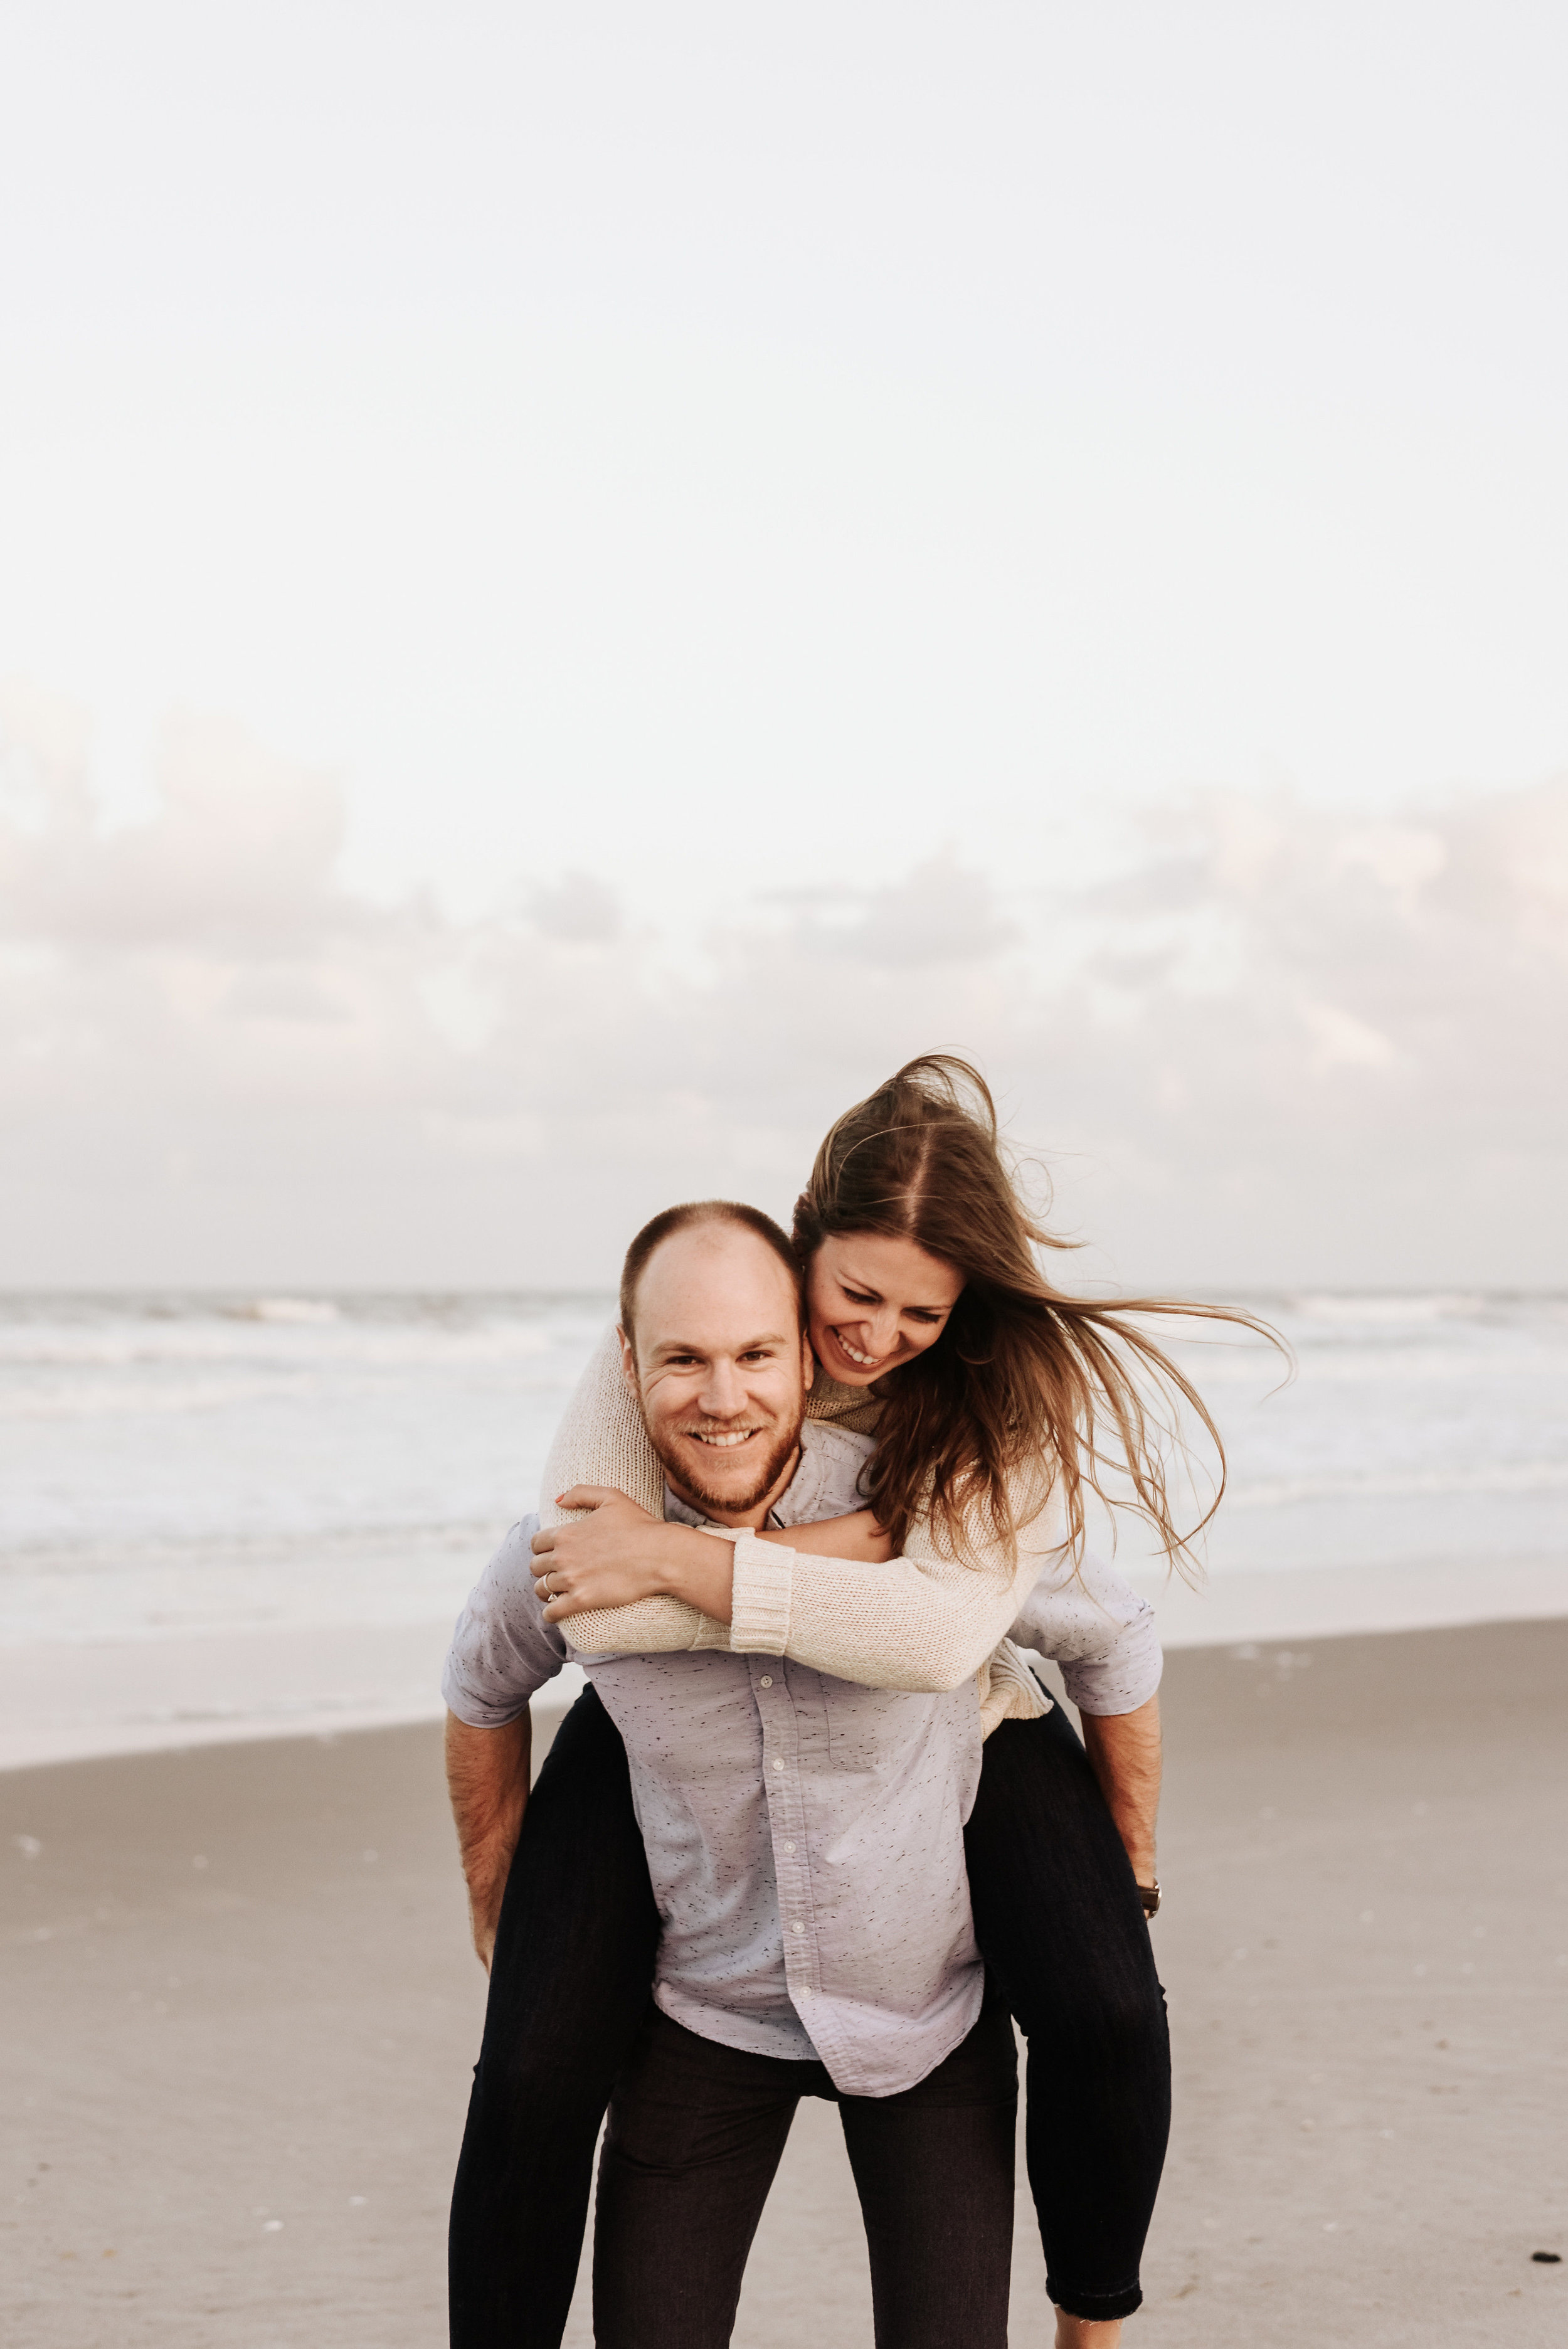 Courtney_Luke_Wedding_Engagement_Session_Cocoa_Beach_Florida_Photography_by_V_4835.jpg